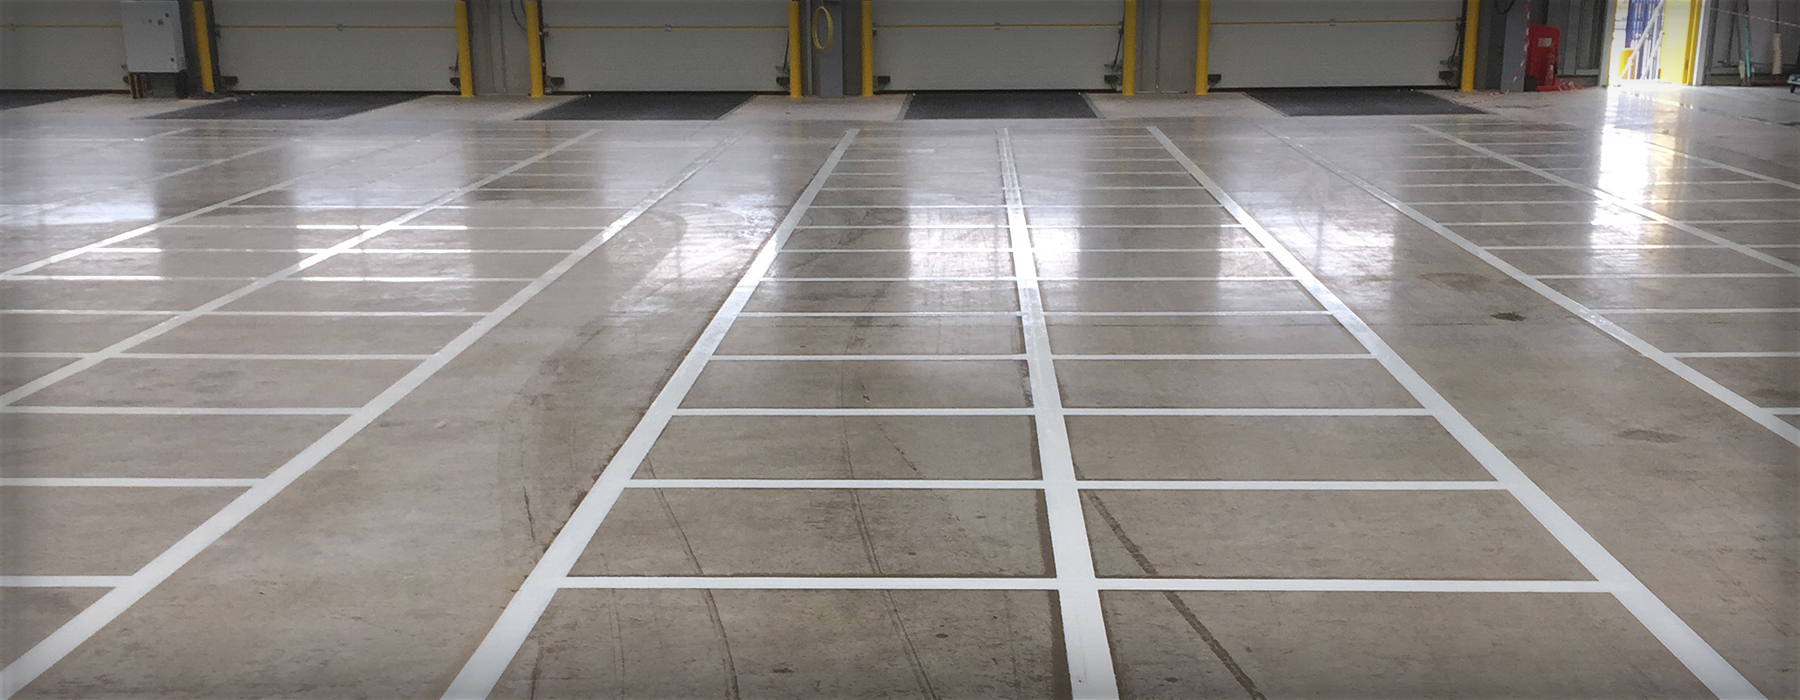 Unprepared Line Marking